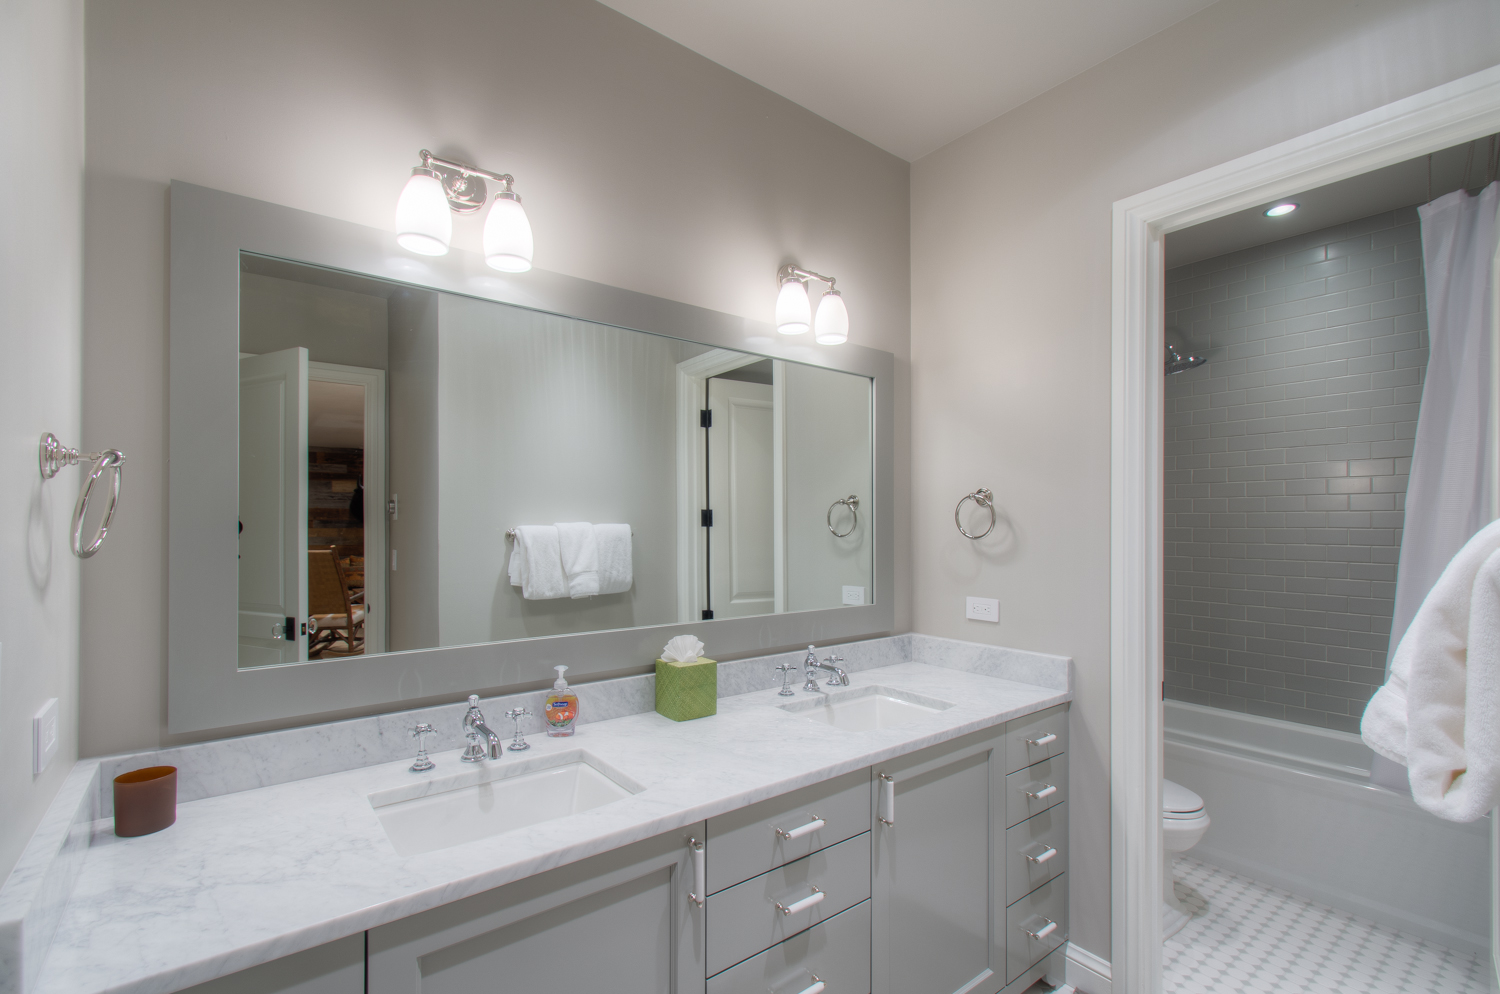 Bathroom with Dual Vanity and Shower/Tub Combo